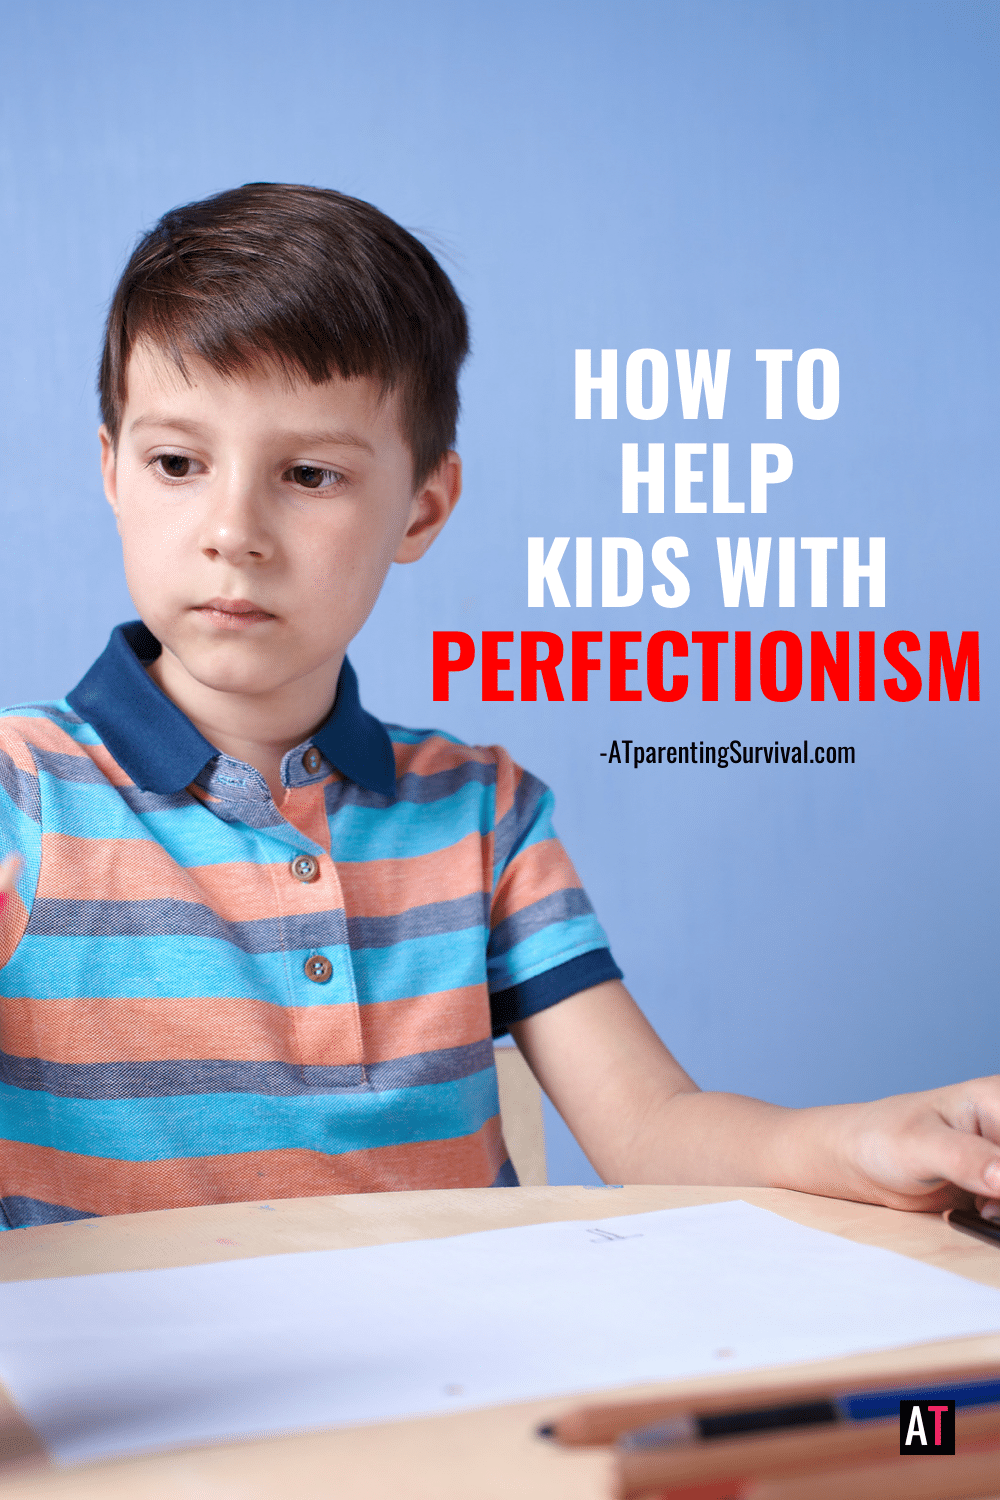 How to Help Kids with Perfectionism